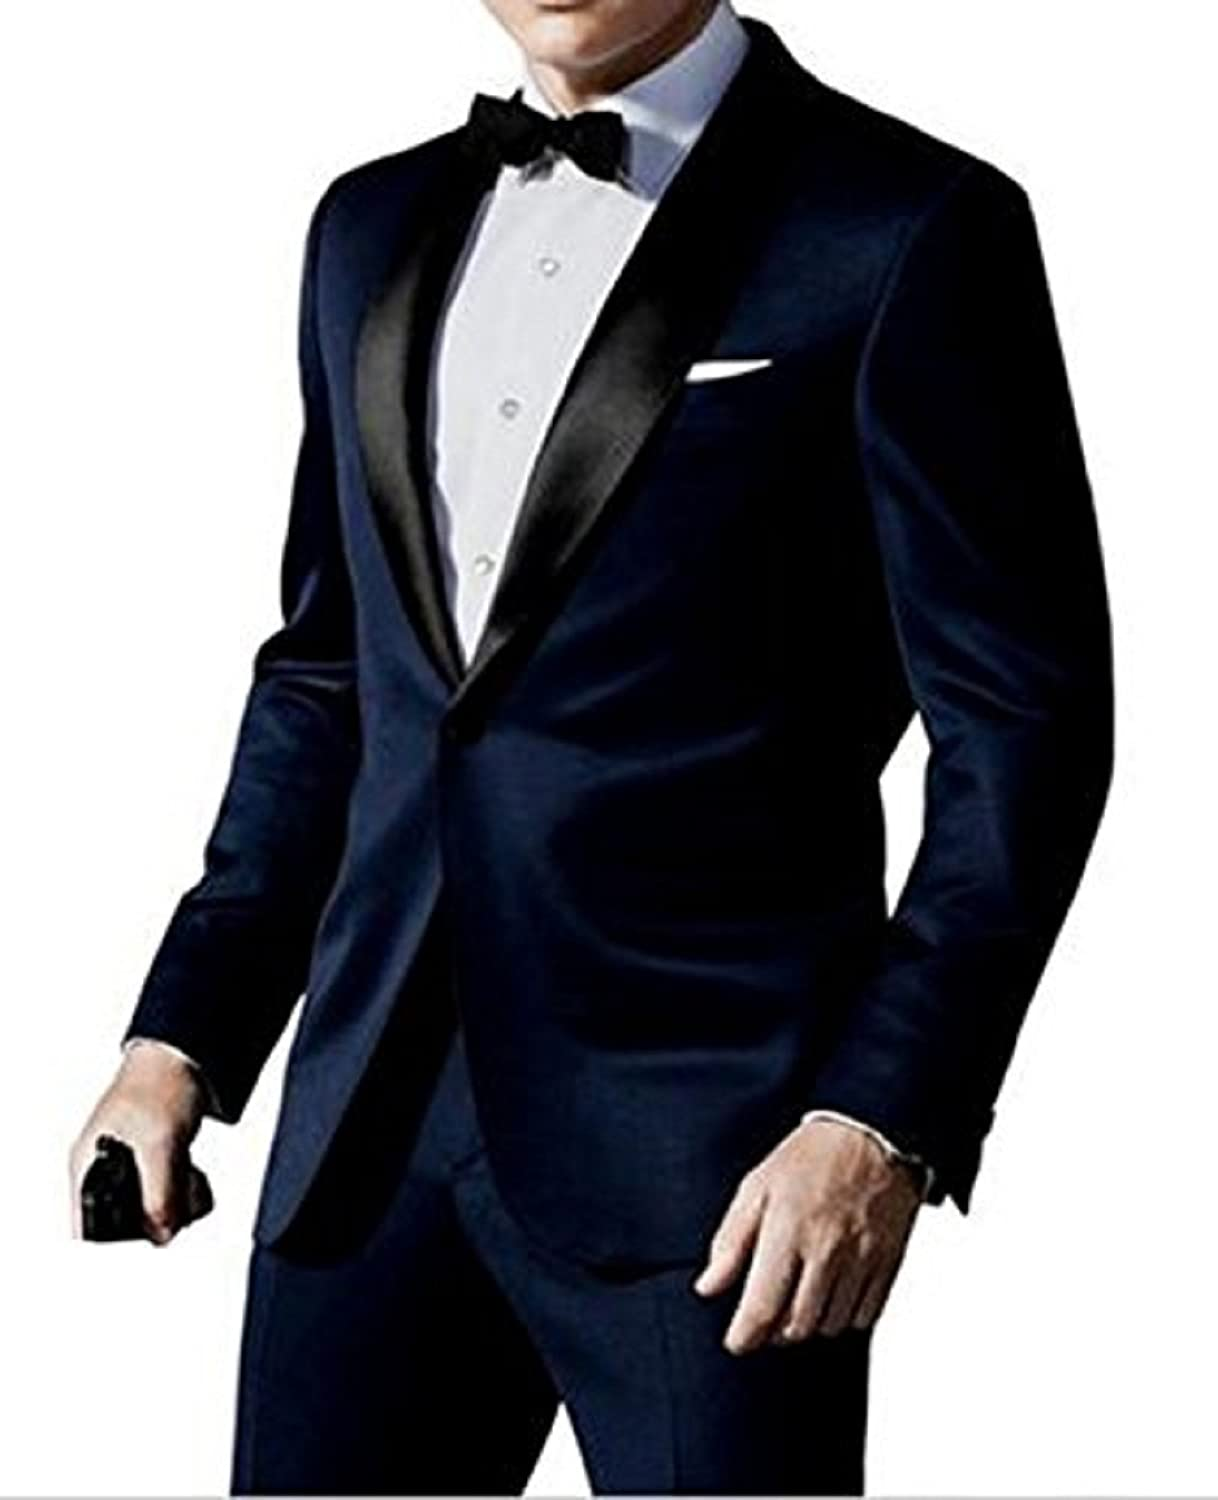 NMFashions Skyfall James Bond Midnight Blue Tuxedo Suit